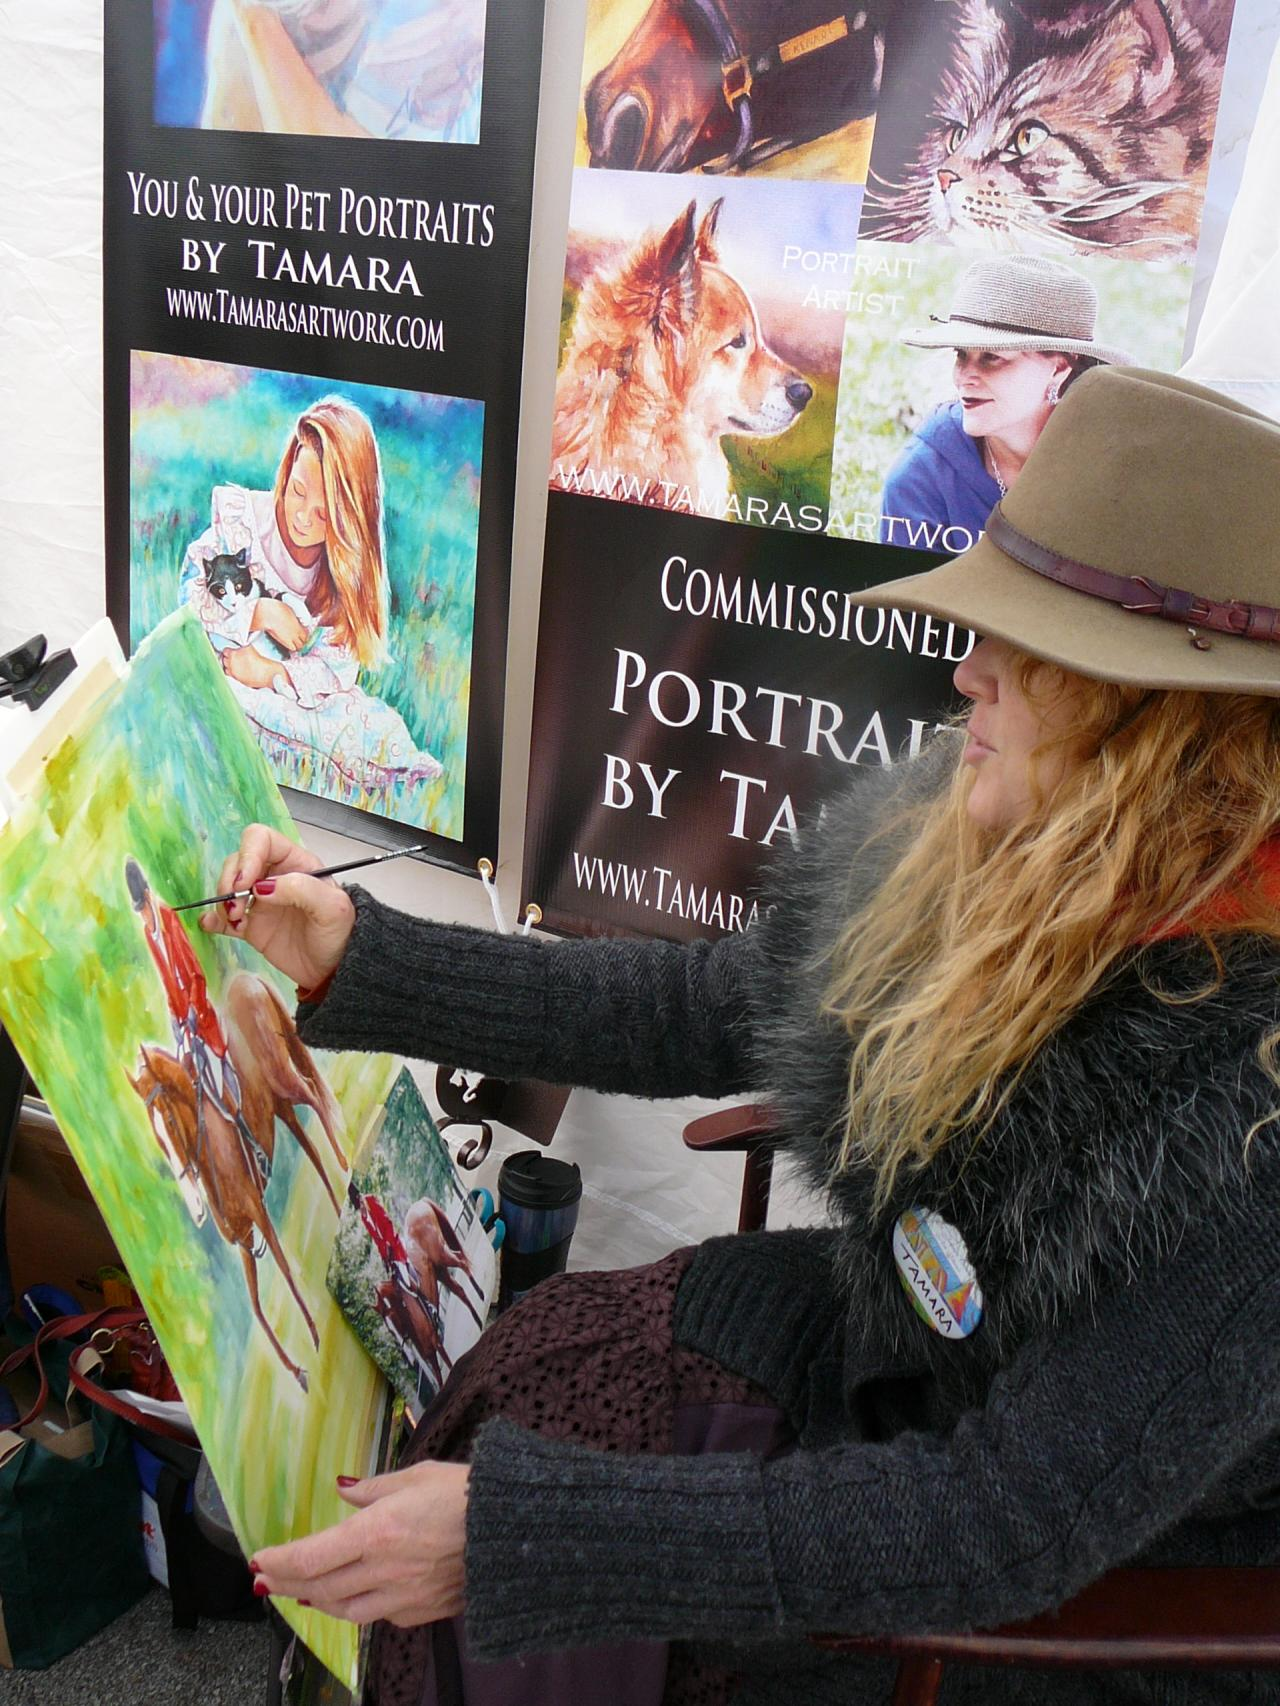 Tamara Painting in her booth